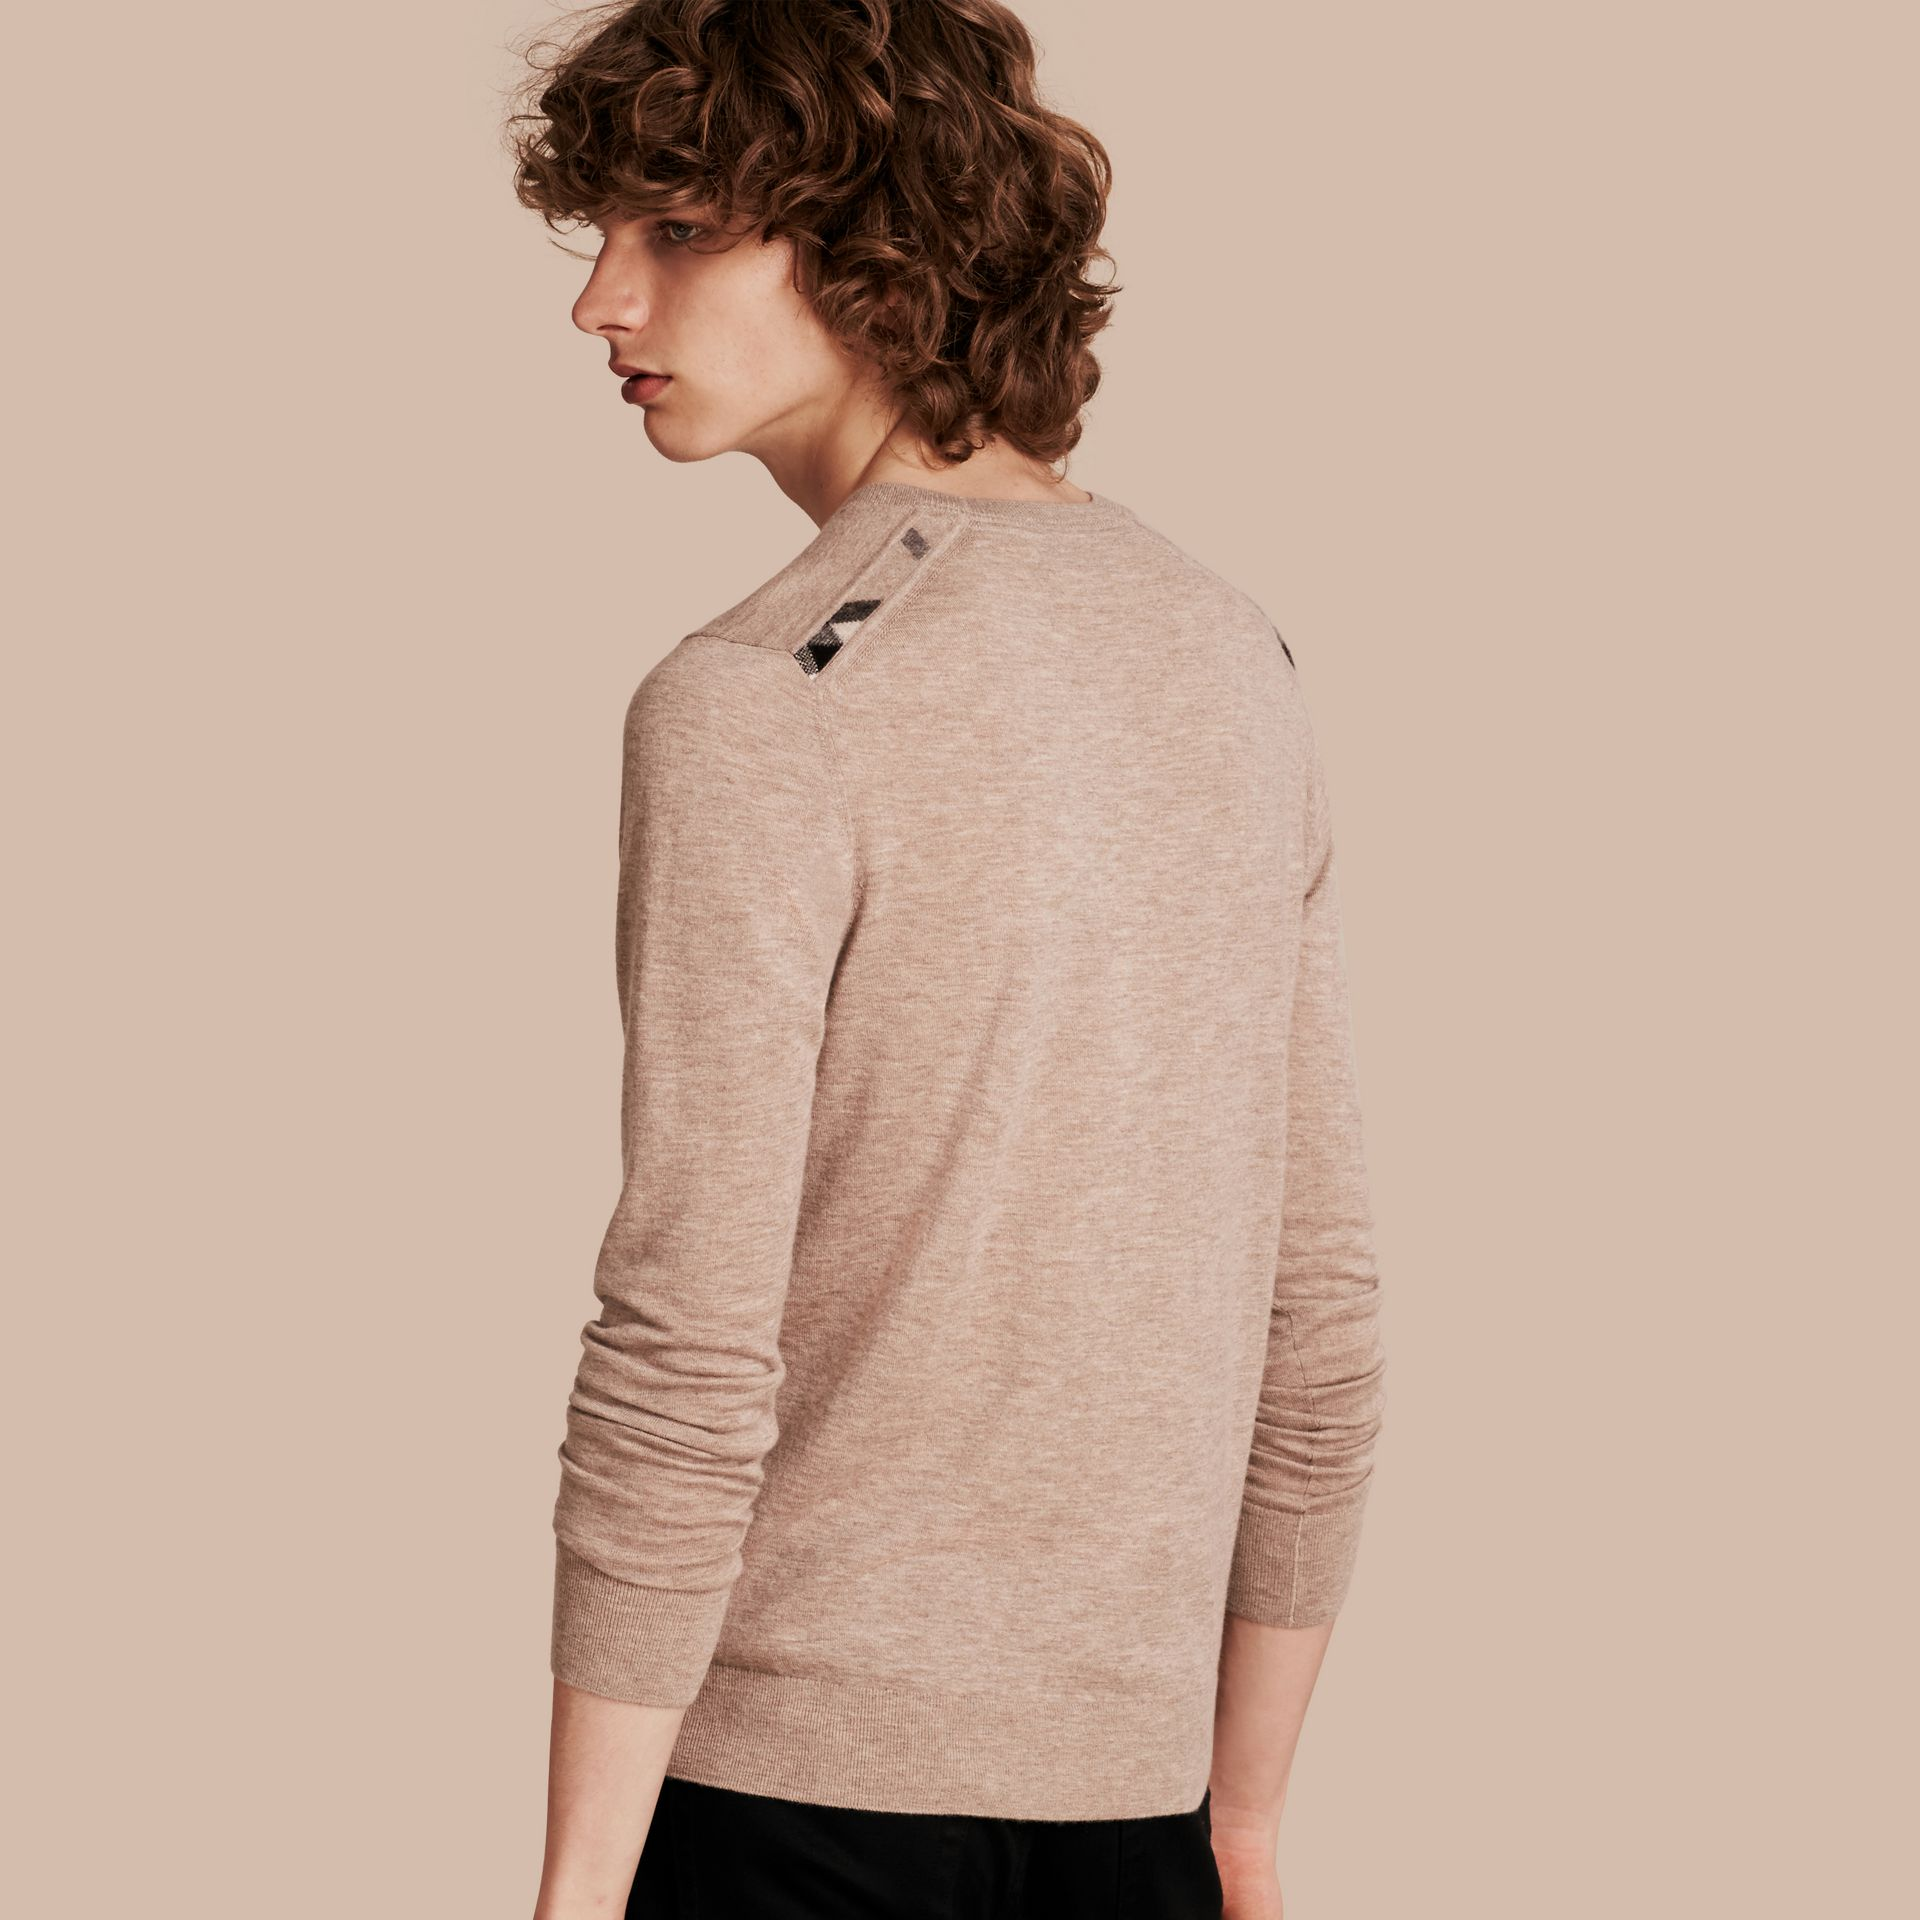 Camel melange Lightweight Crew Neck Cashmere Sweater with Check Trim Camel Melange - gallery image 1